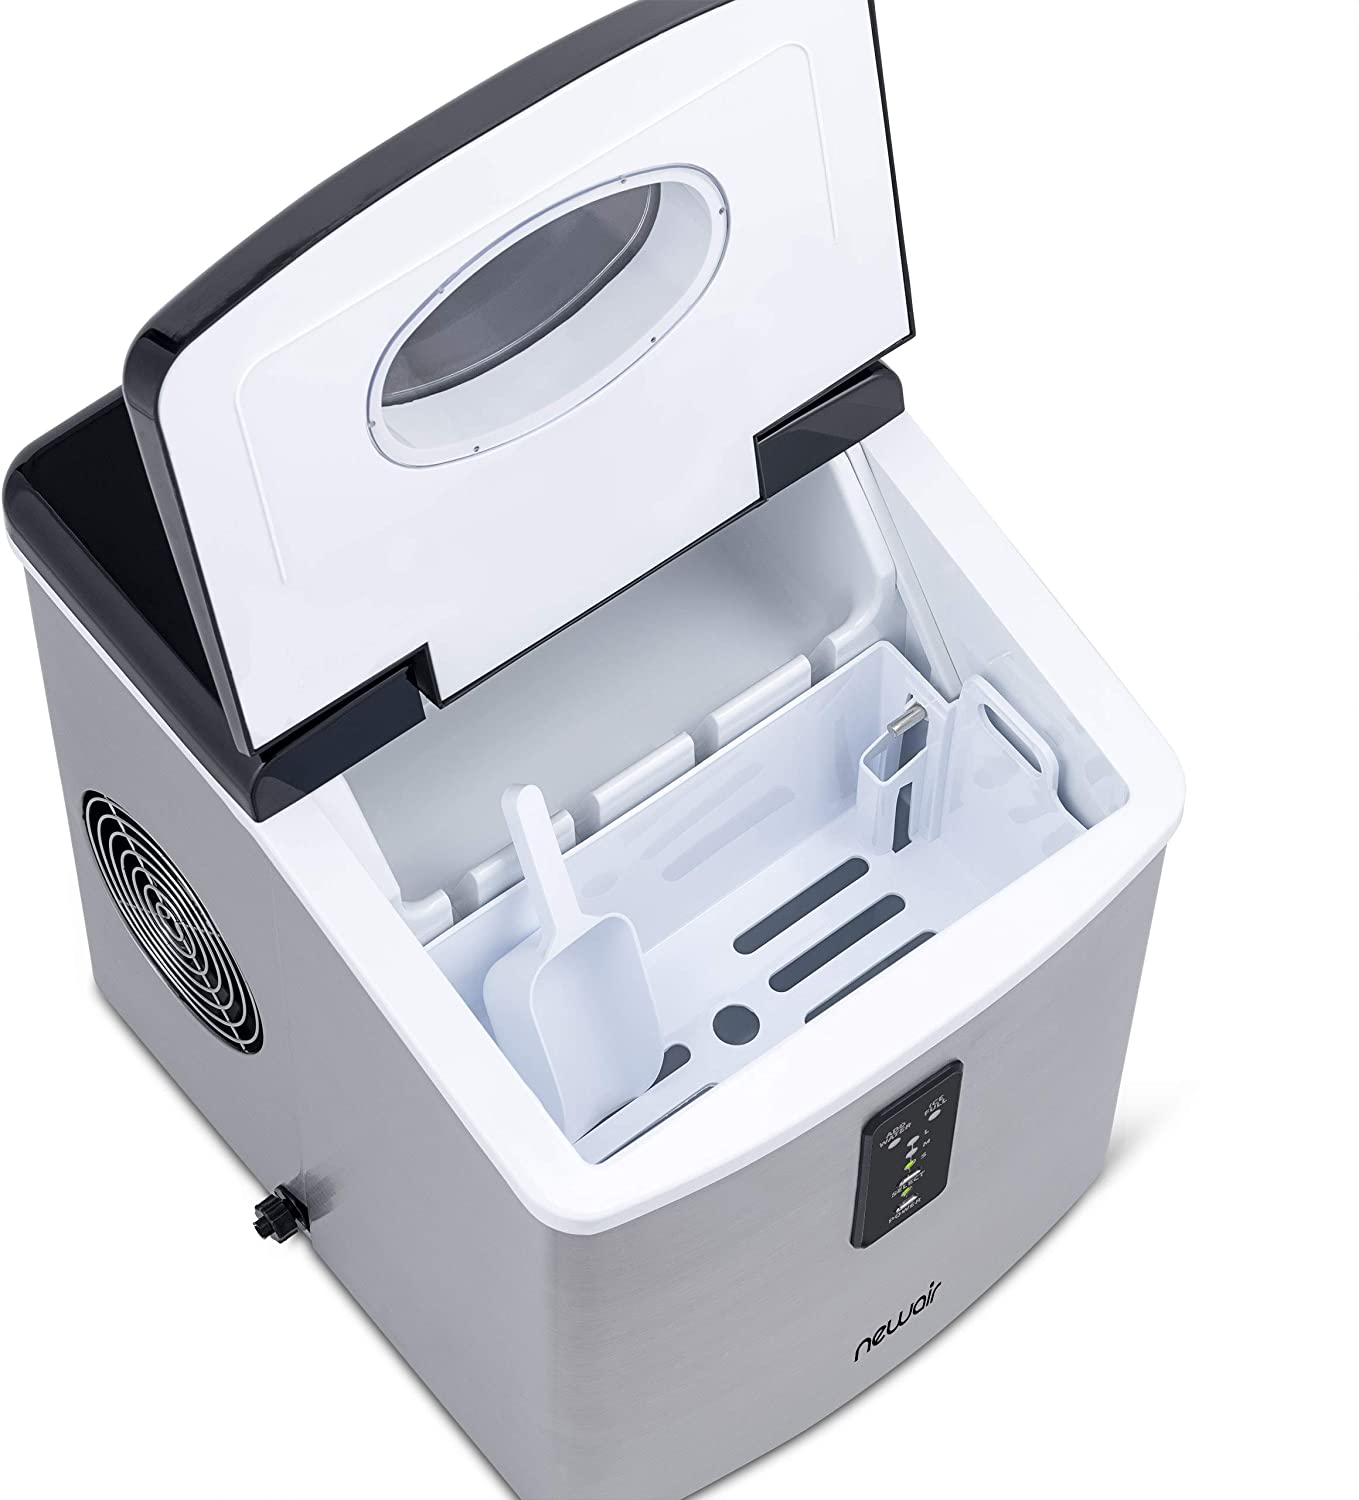 NewAir AI-100SS 28-Pound Portable Ice Maker Reviews 2